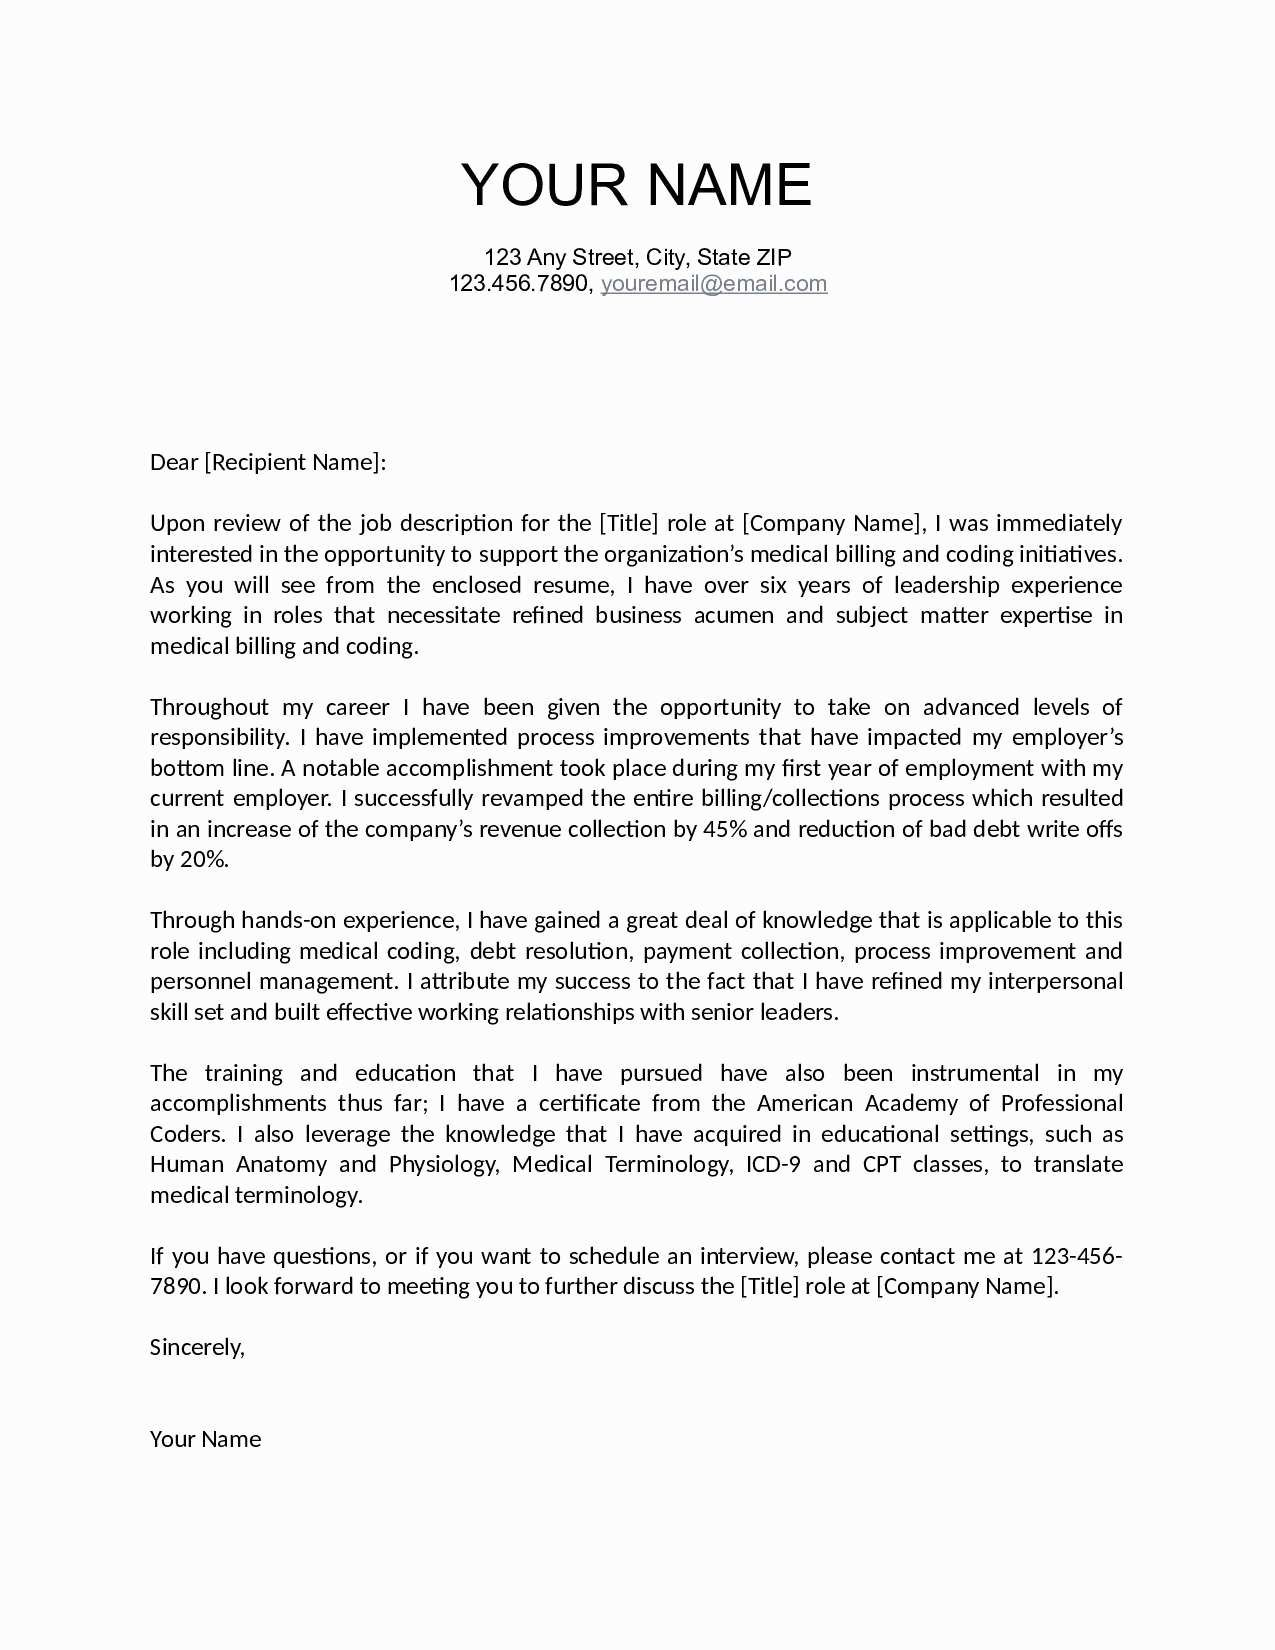 Letter Of Intent Email Template - Job Letter Intent Examples Refrence Job Fer Letter Template Us